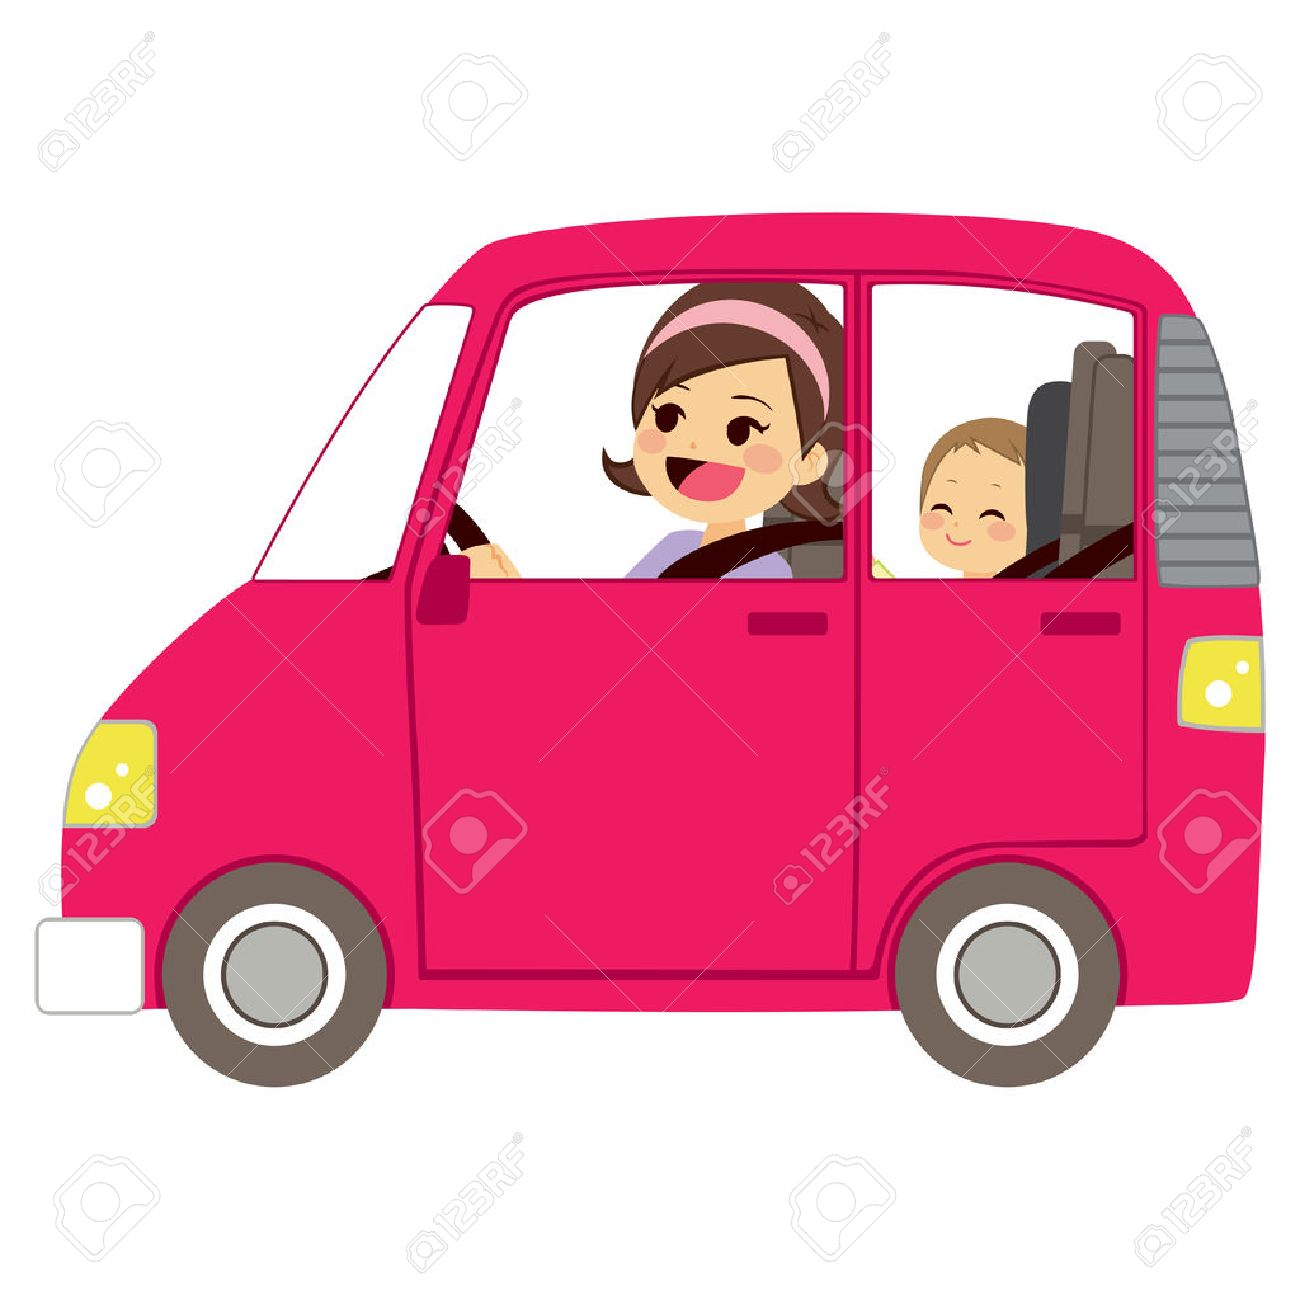 Beautiful young mom driving pink car with baby on back seat of vehicle - 53255946